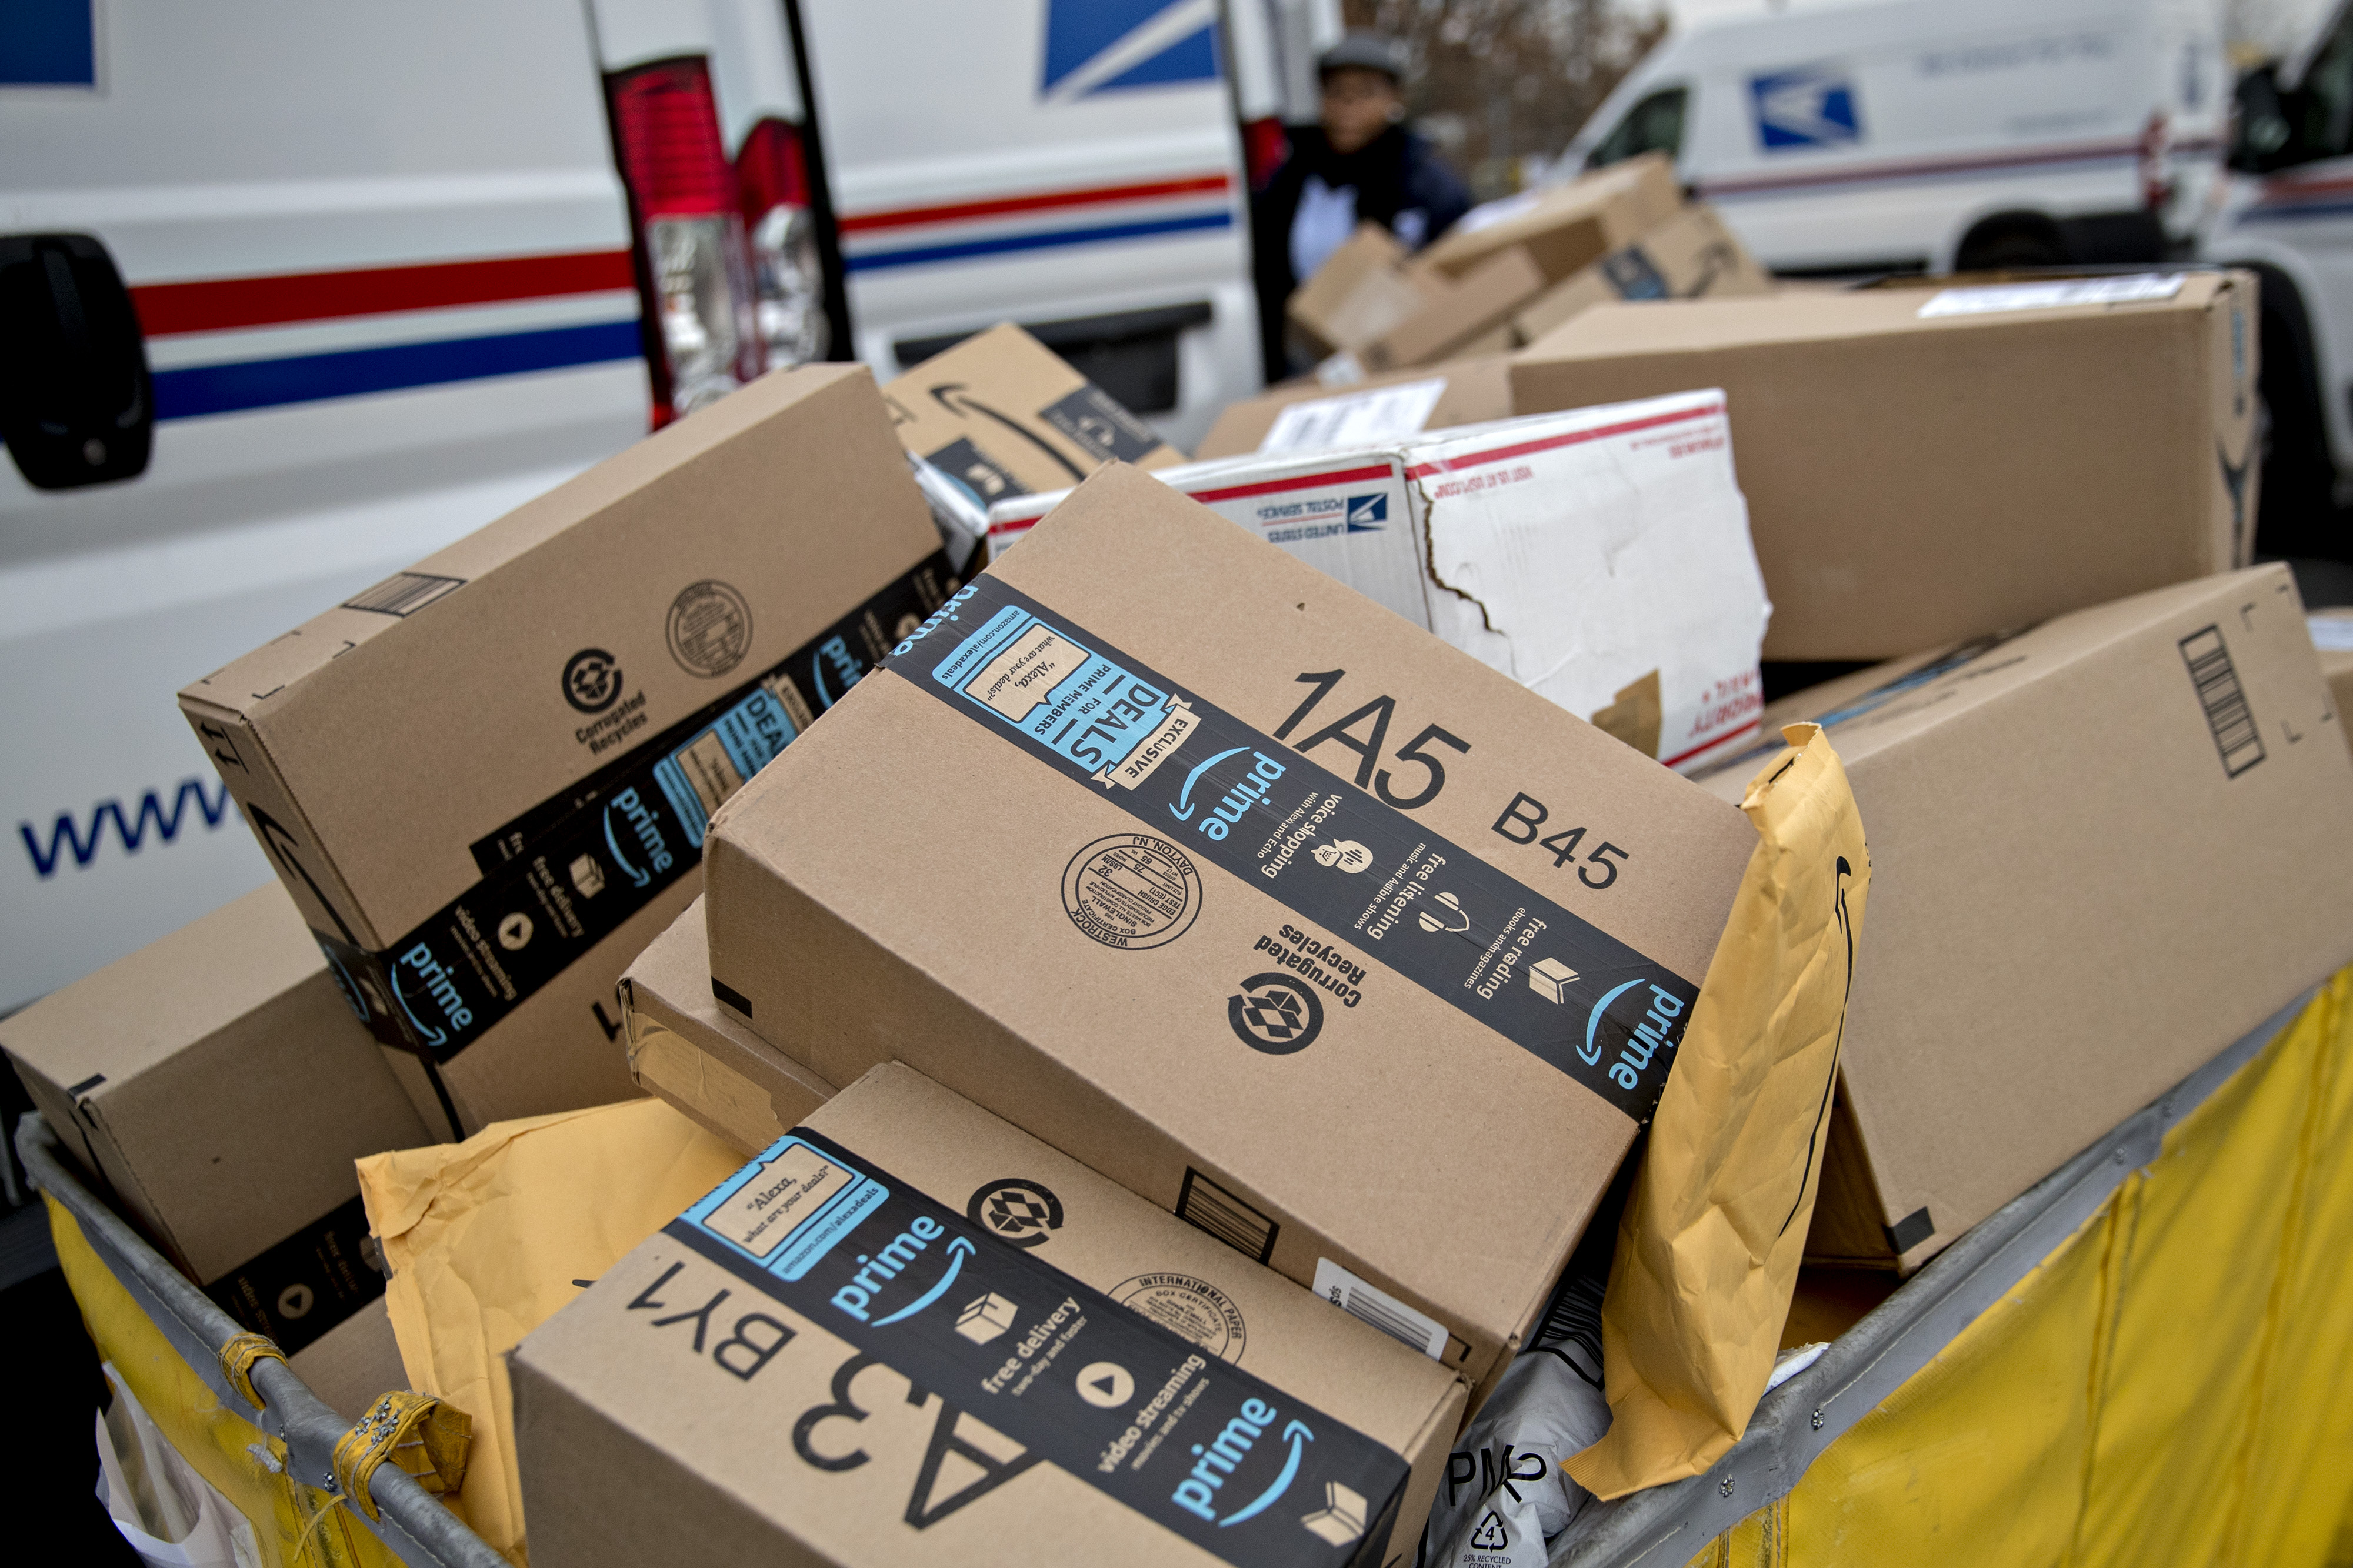 The onset of stay-at-home orders saw a surge in parcel volume for the USPS.